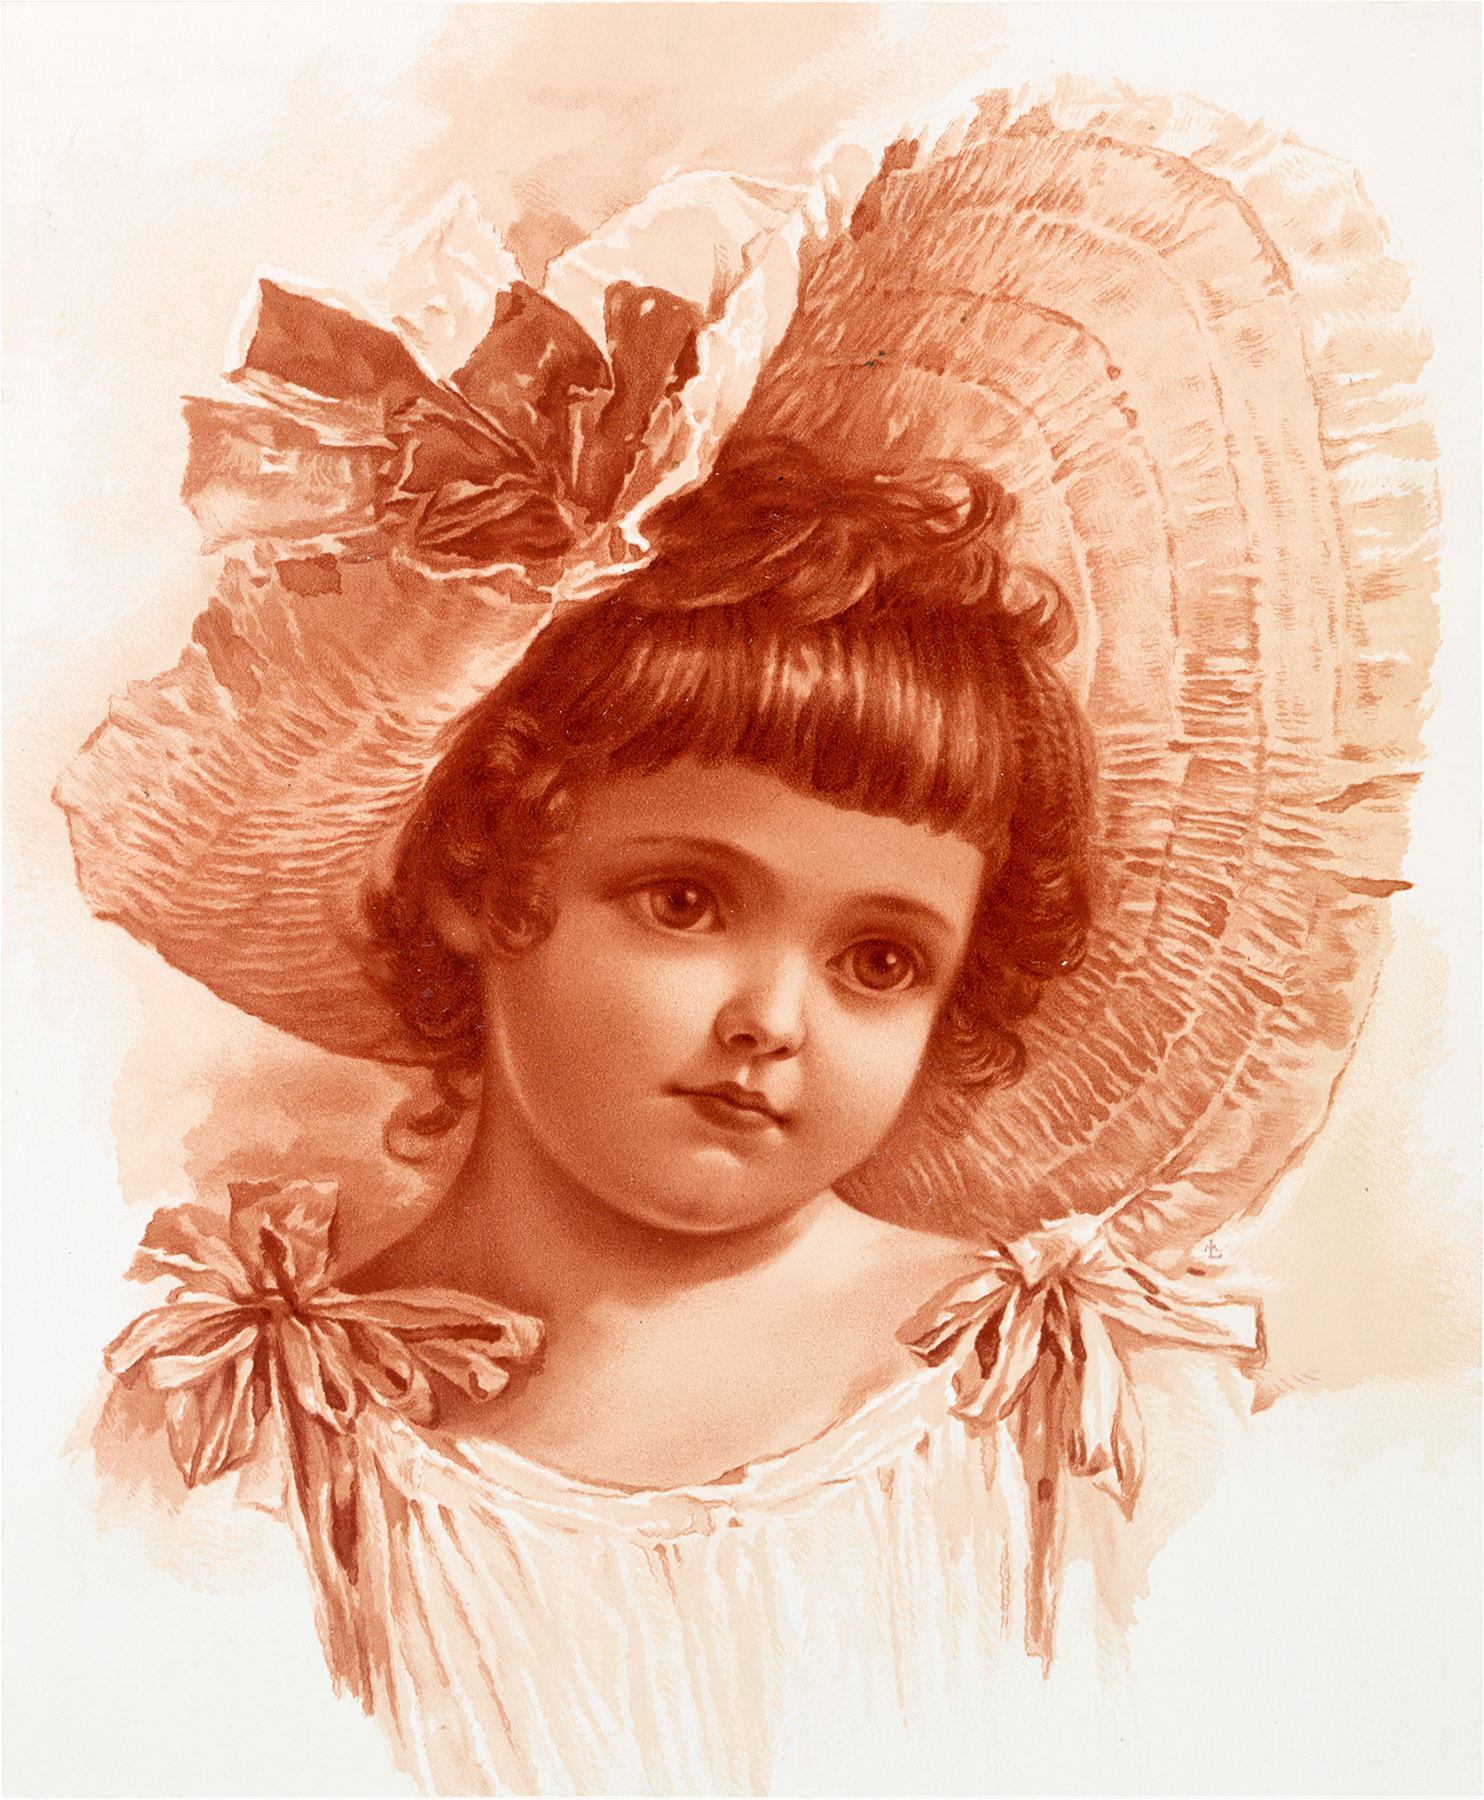 Vintage Girl with Ruffled Hat Image